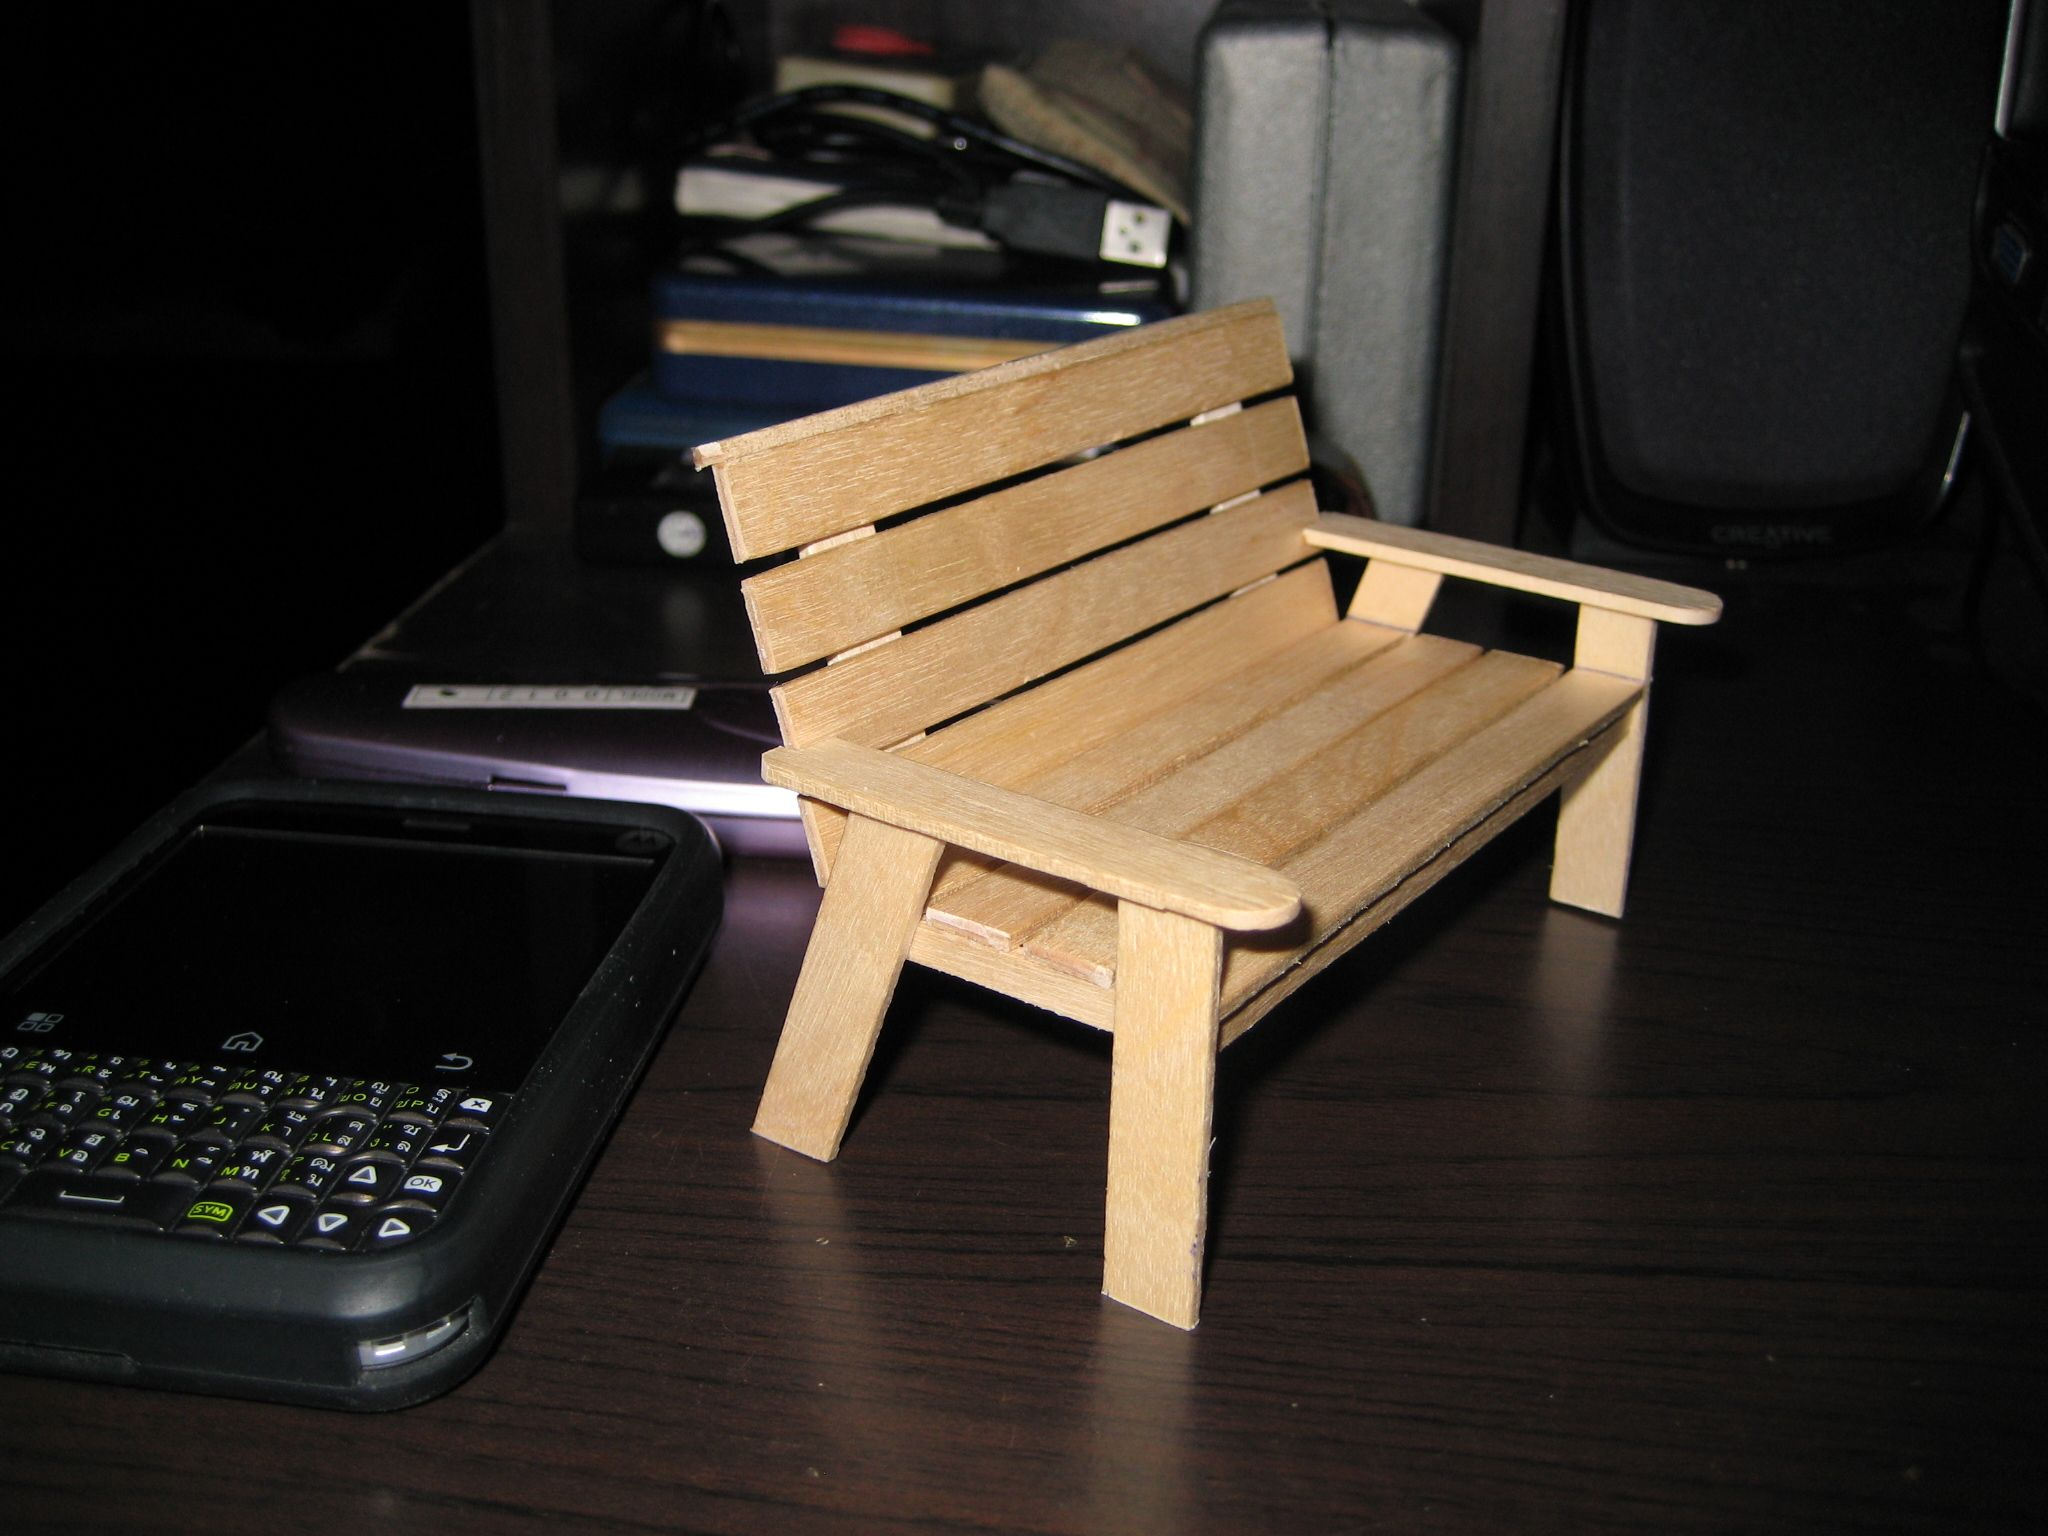 My Hobby Craft Miniature Park Benches for Dolls